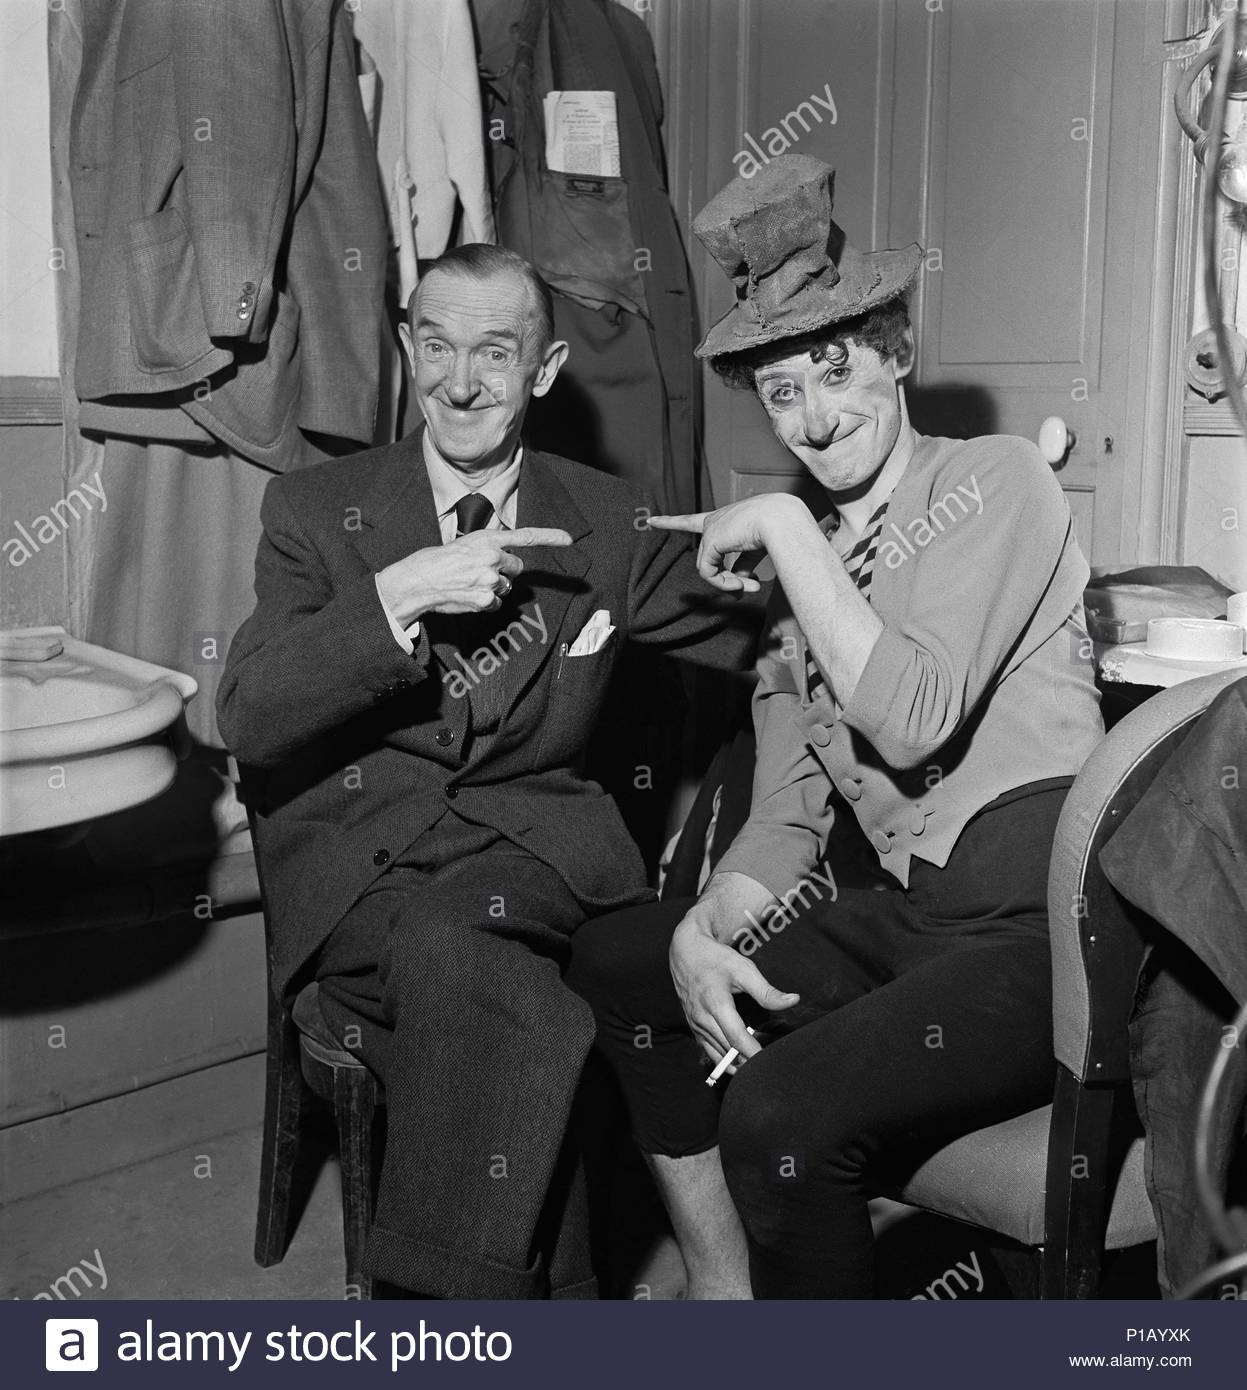 """Marcel Marceau, the French mime who created the figure of """" Bip"""", a tragic white clown. Marceau with Stan Laurel, who visited Marceau in his dressing room. Paris, 1951. Location: Townscape, Paris, France. - Stock Image"""